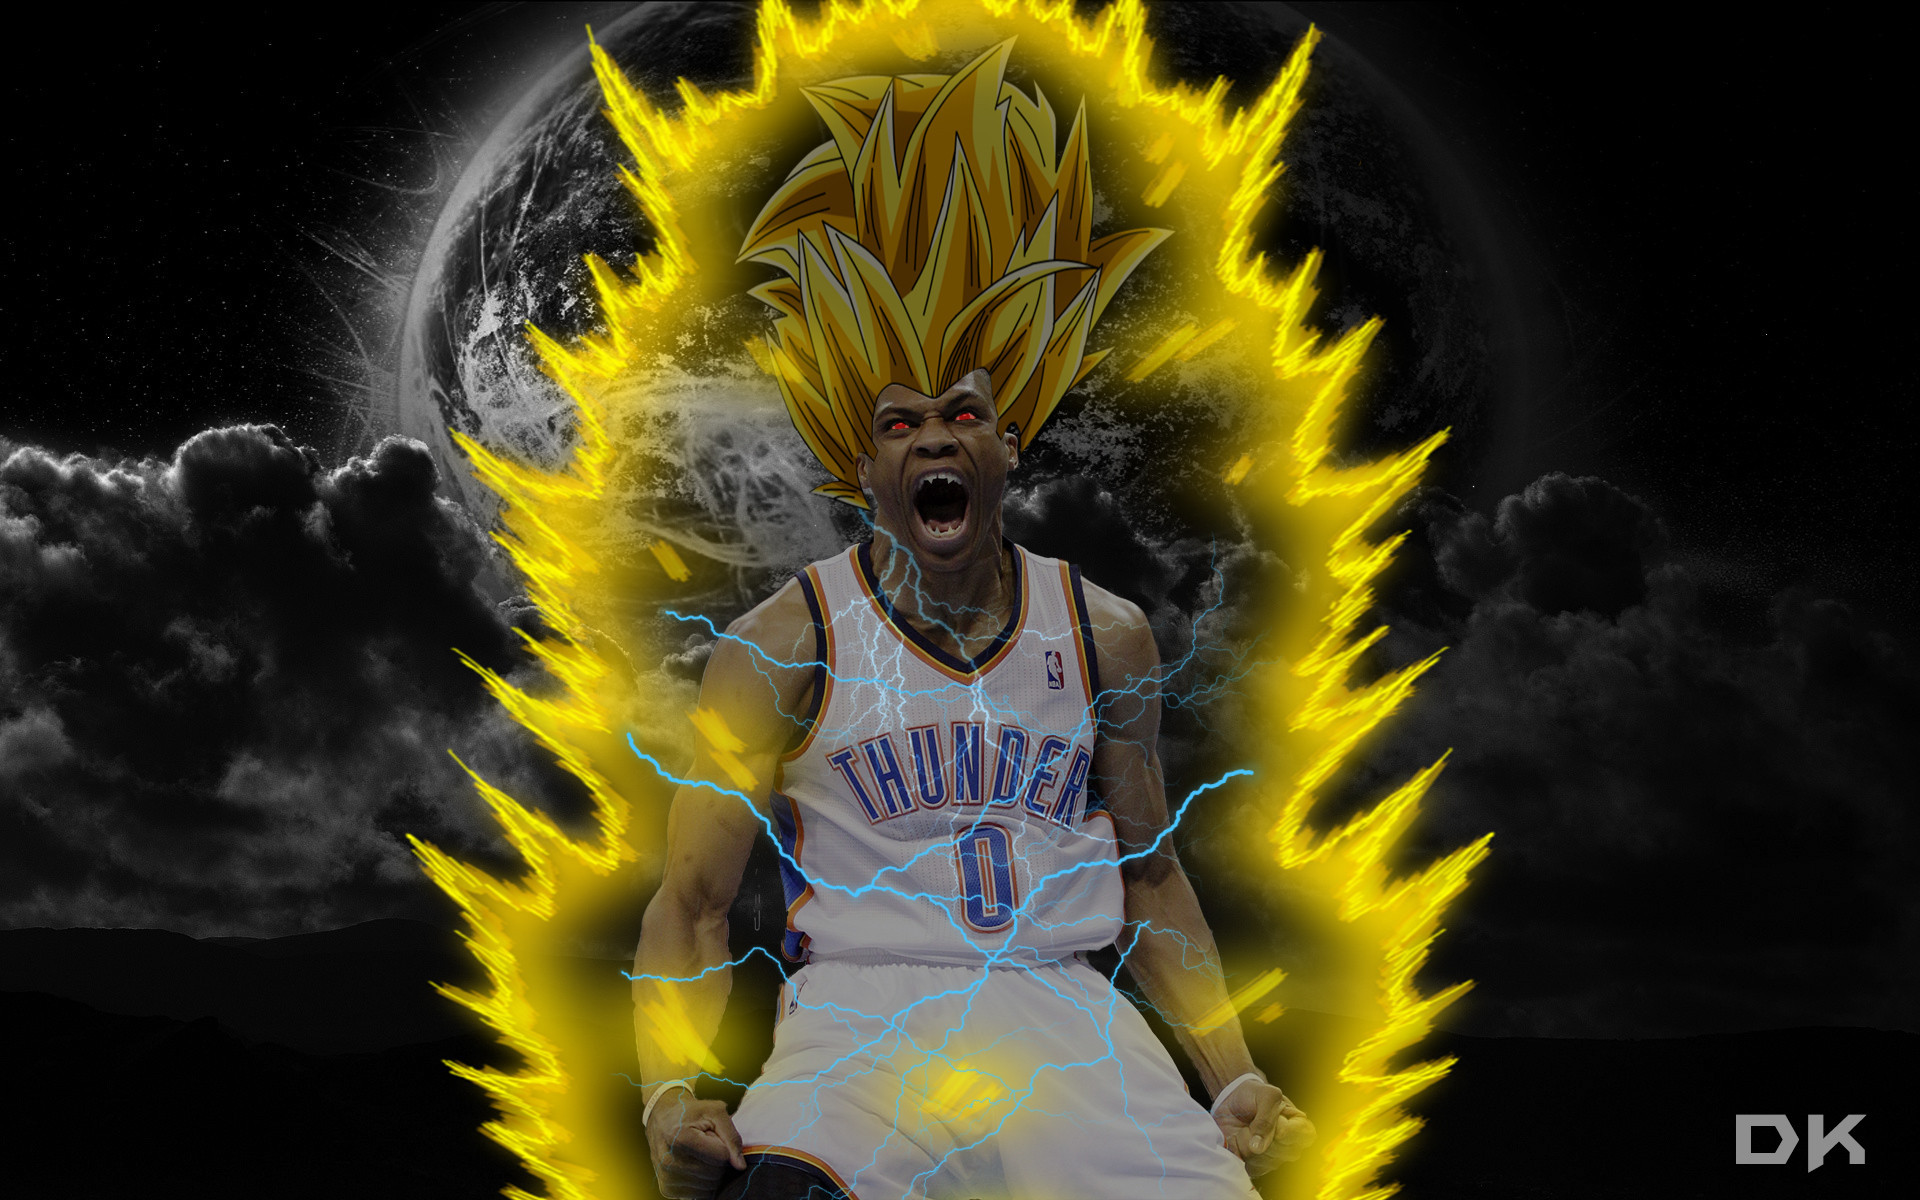 HD images) (78+ Russell Westbrook Wallpaper